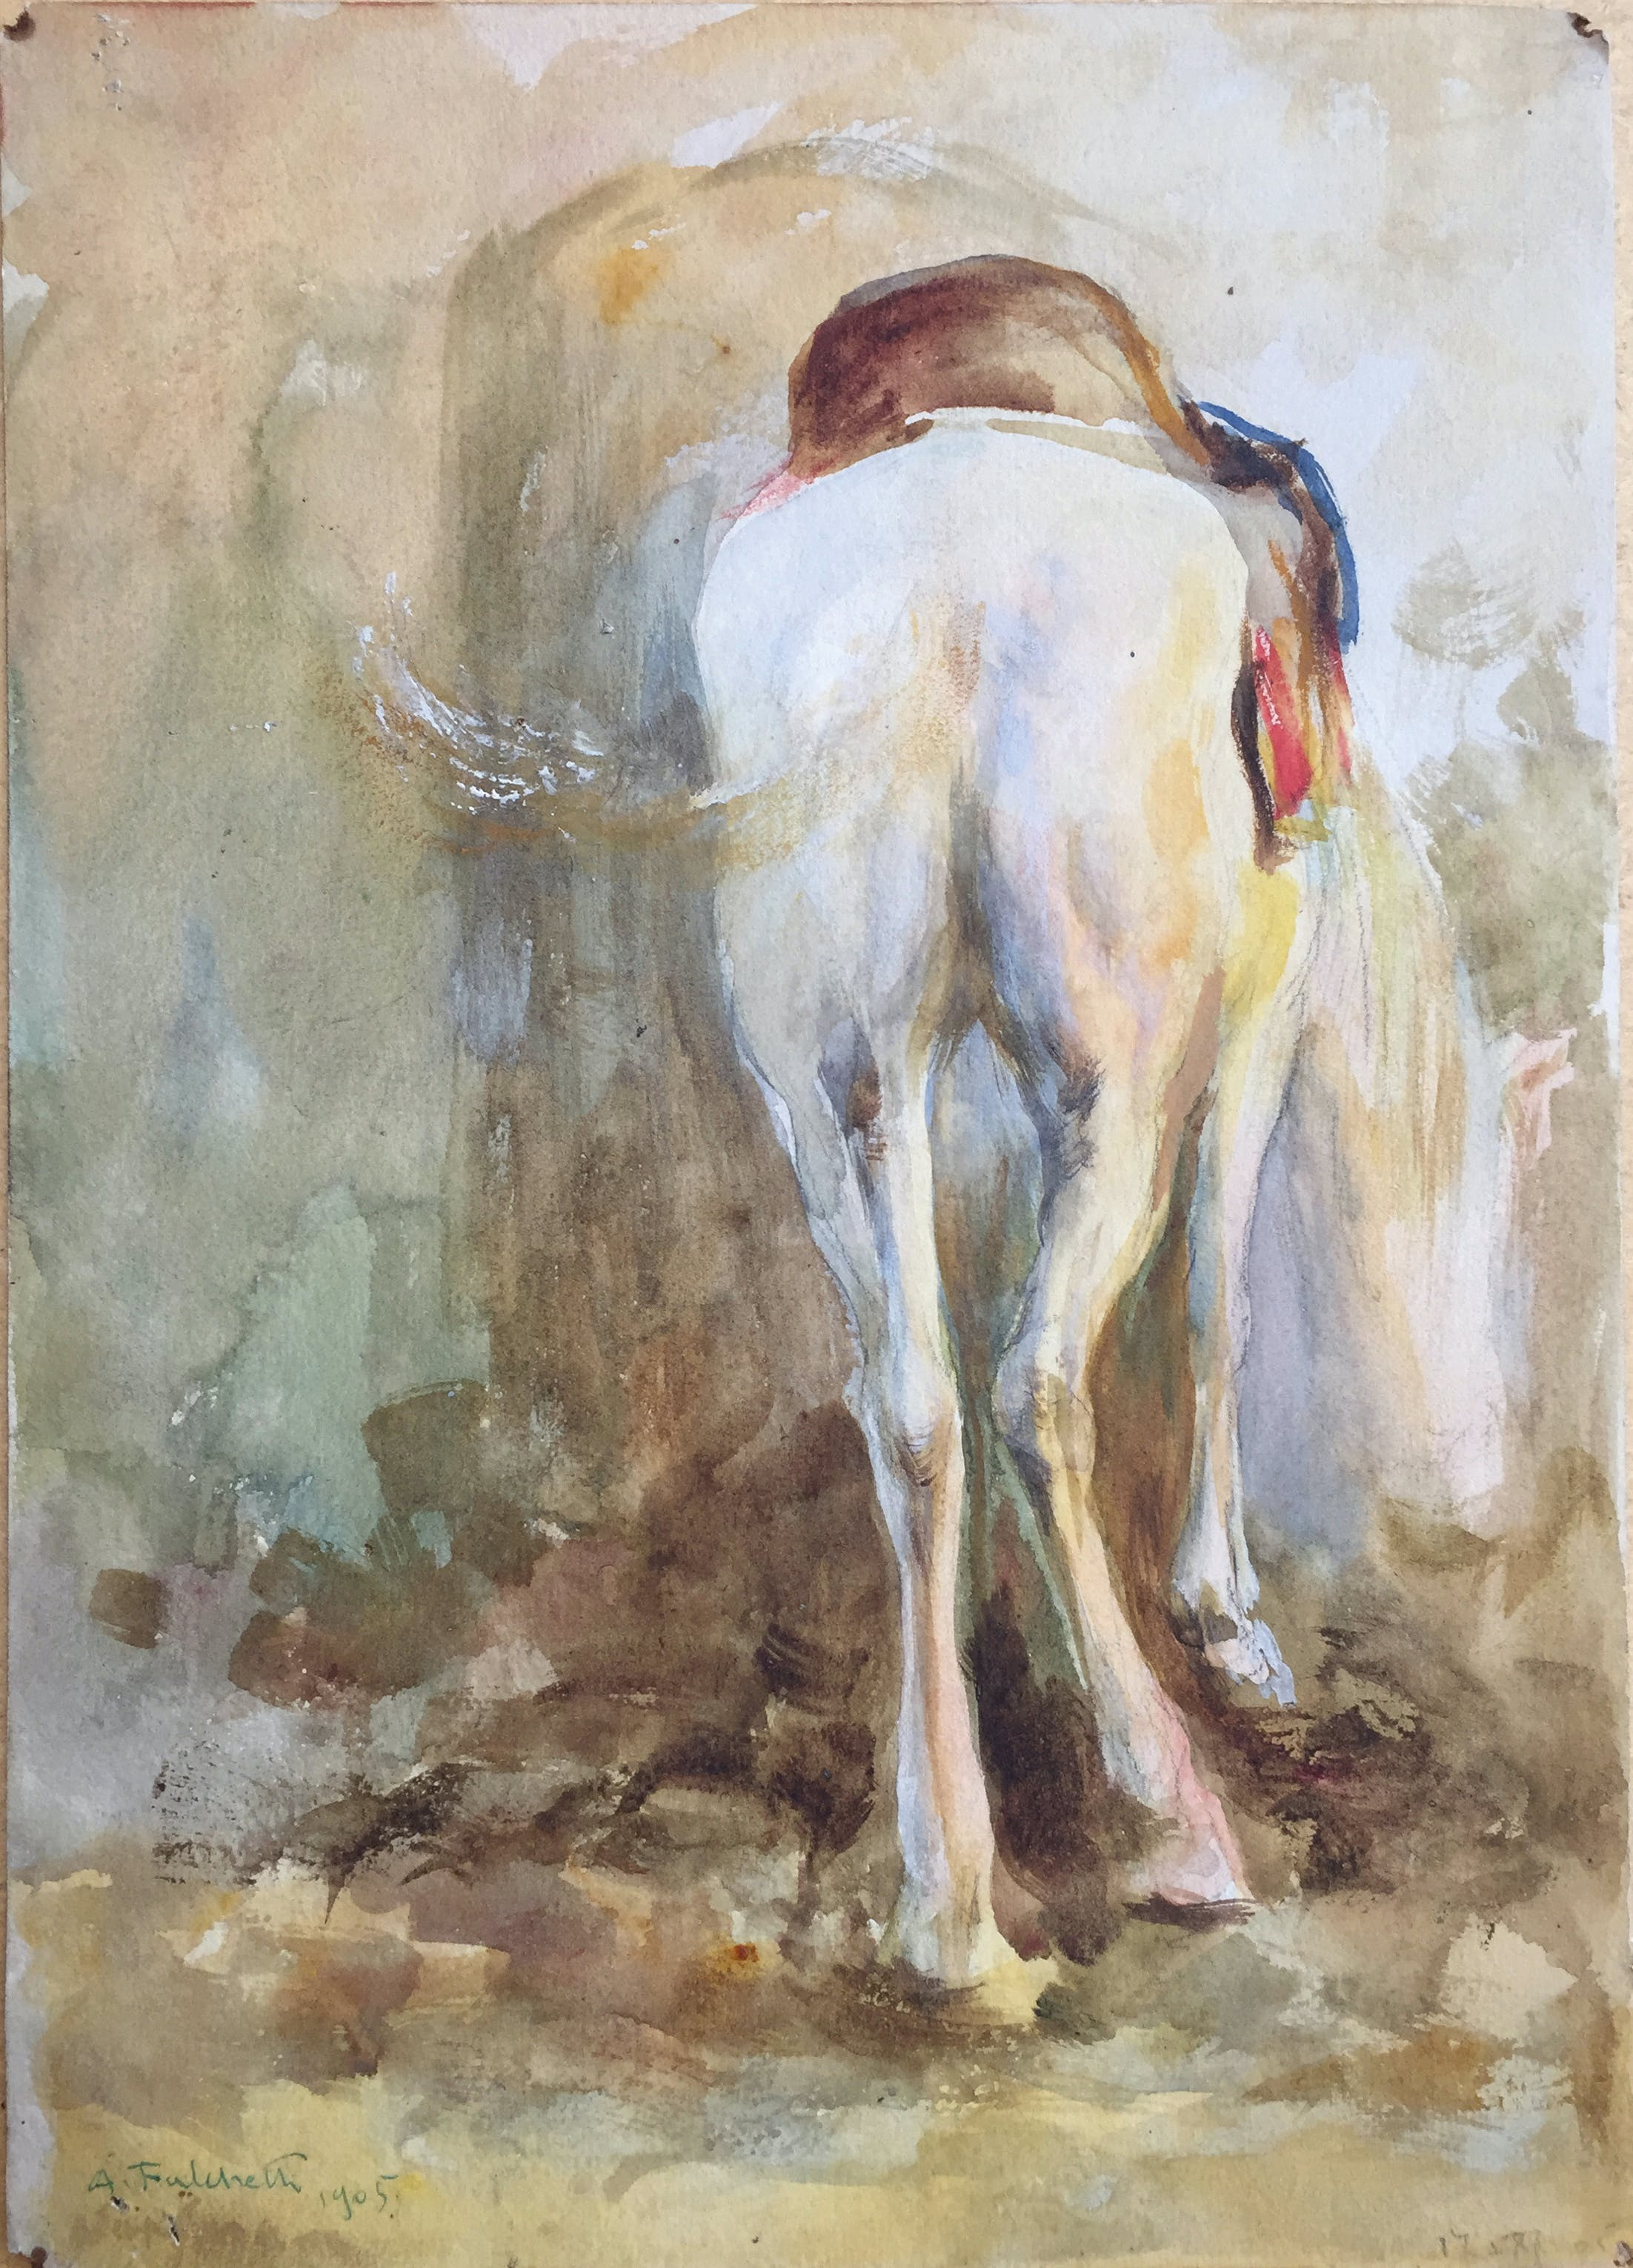 White Mule (1905), Alberto Falchetti, private collection